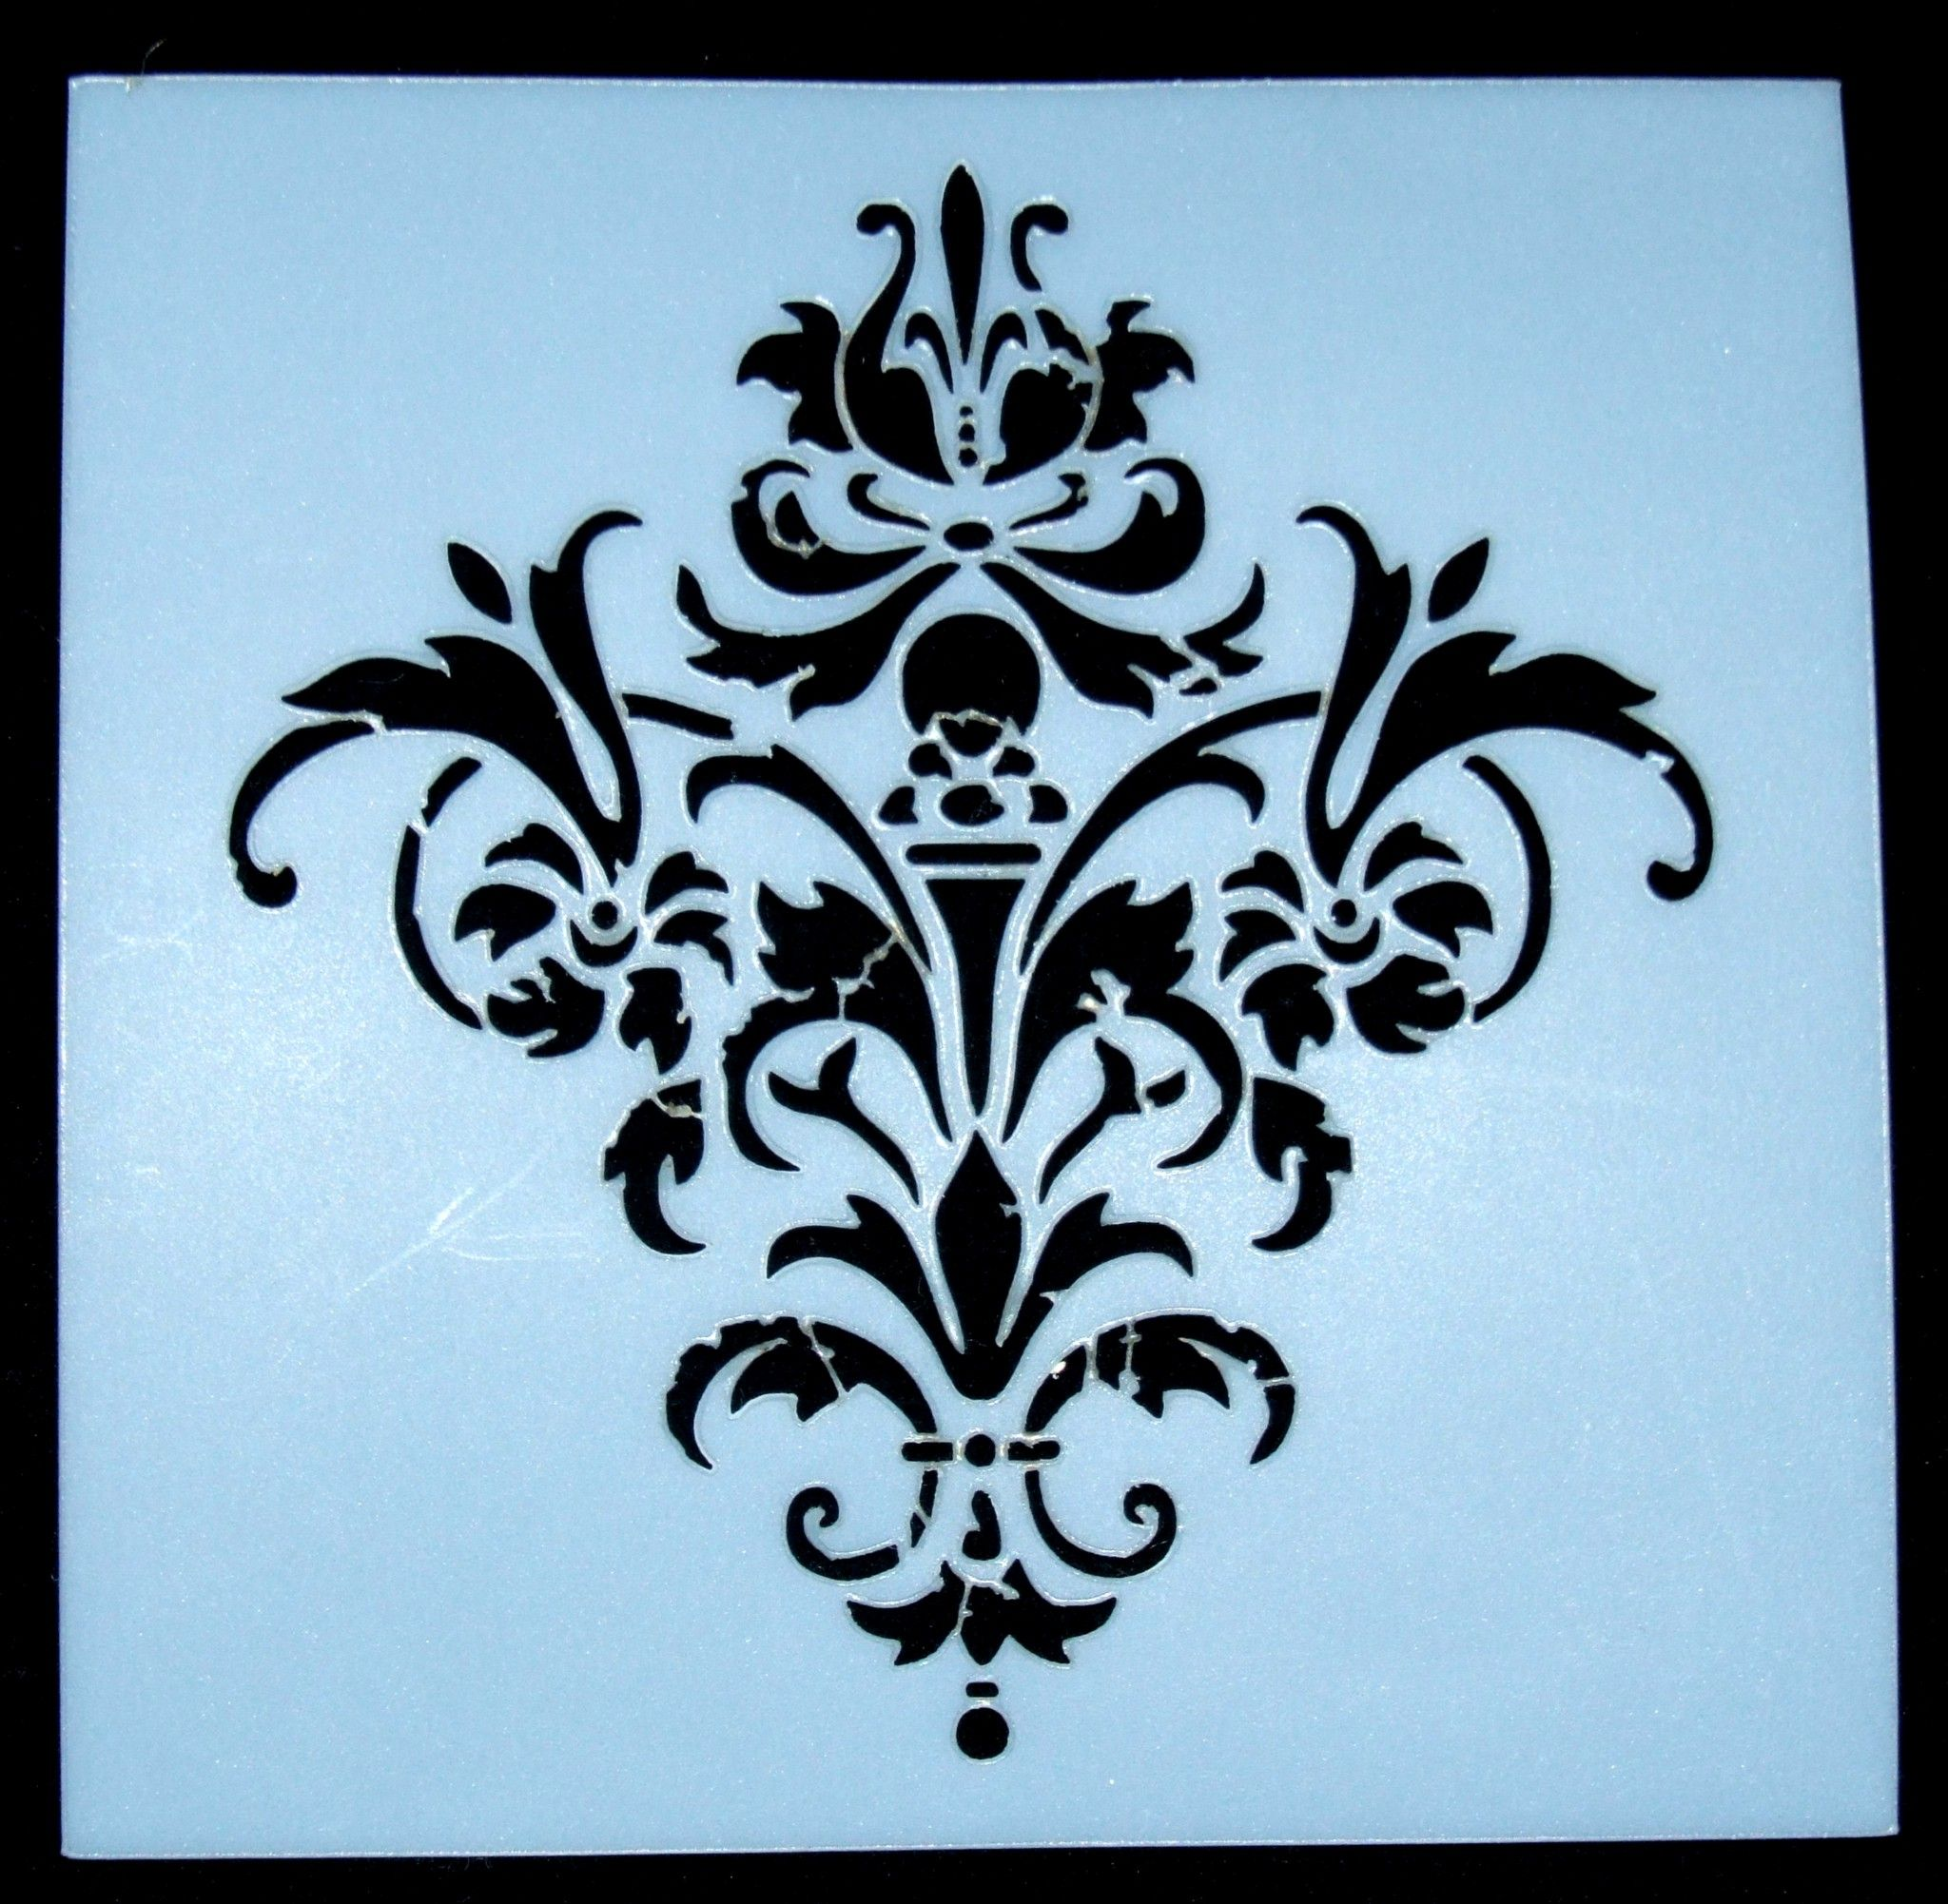 Wall Design With Stencils : Damask pattern design stencil on tacky back